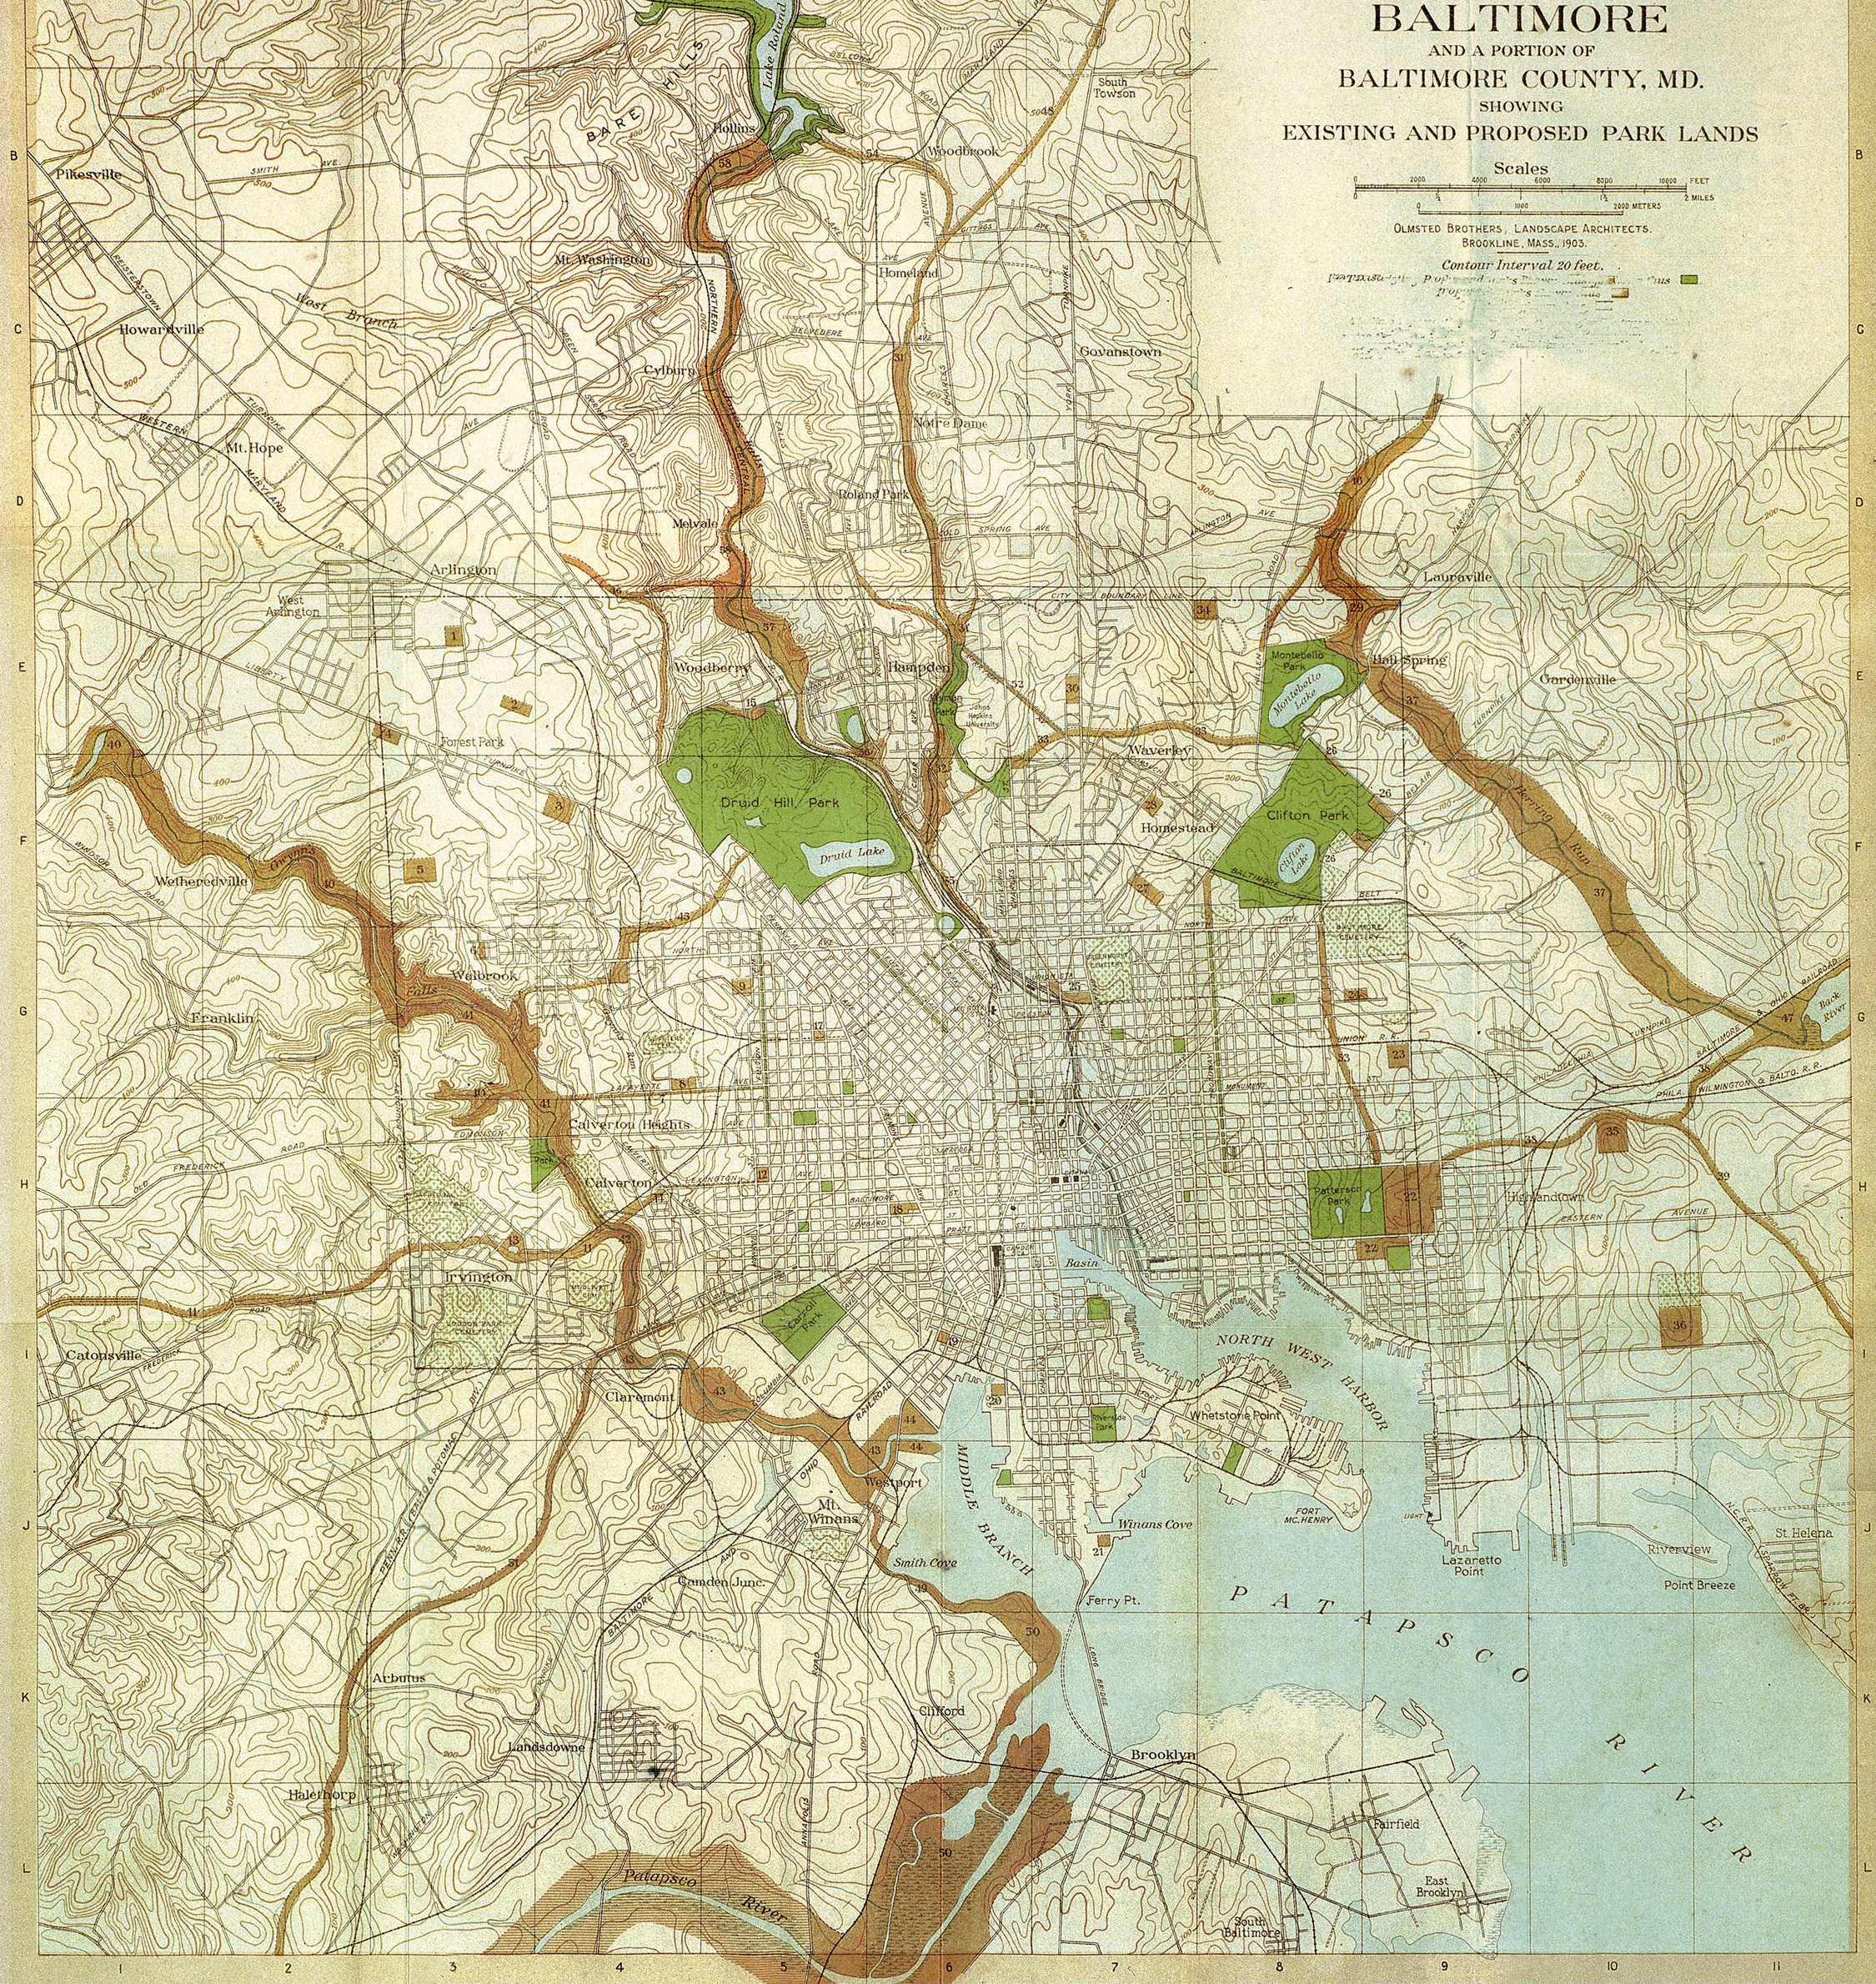 Map from the 1904 report on recommendations for Baltimore's park system by the Olmsted Brothers, under the direction of Frederick Law Olmsted, Jr. The report highlighted the importance of securing the stream valleys as natural corridors and protected watersheds. A copy of the map is included in the reprint edition of the 1904 report (available for purchase; see the Publications page of the web site).